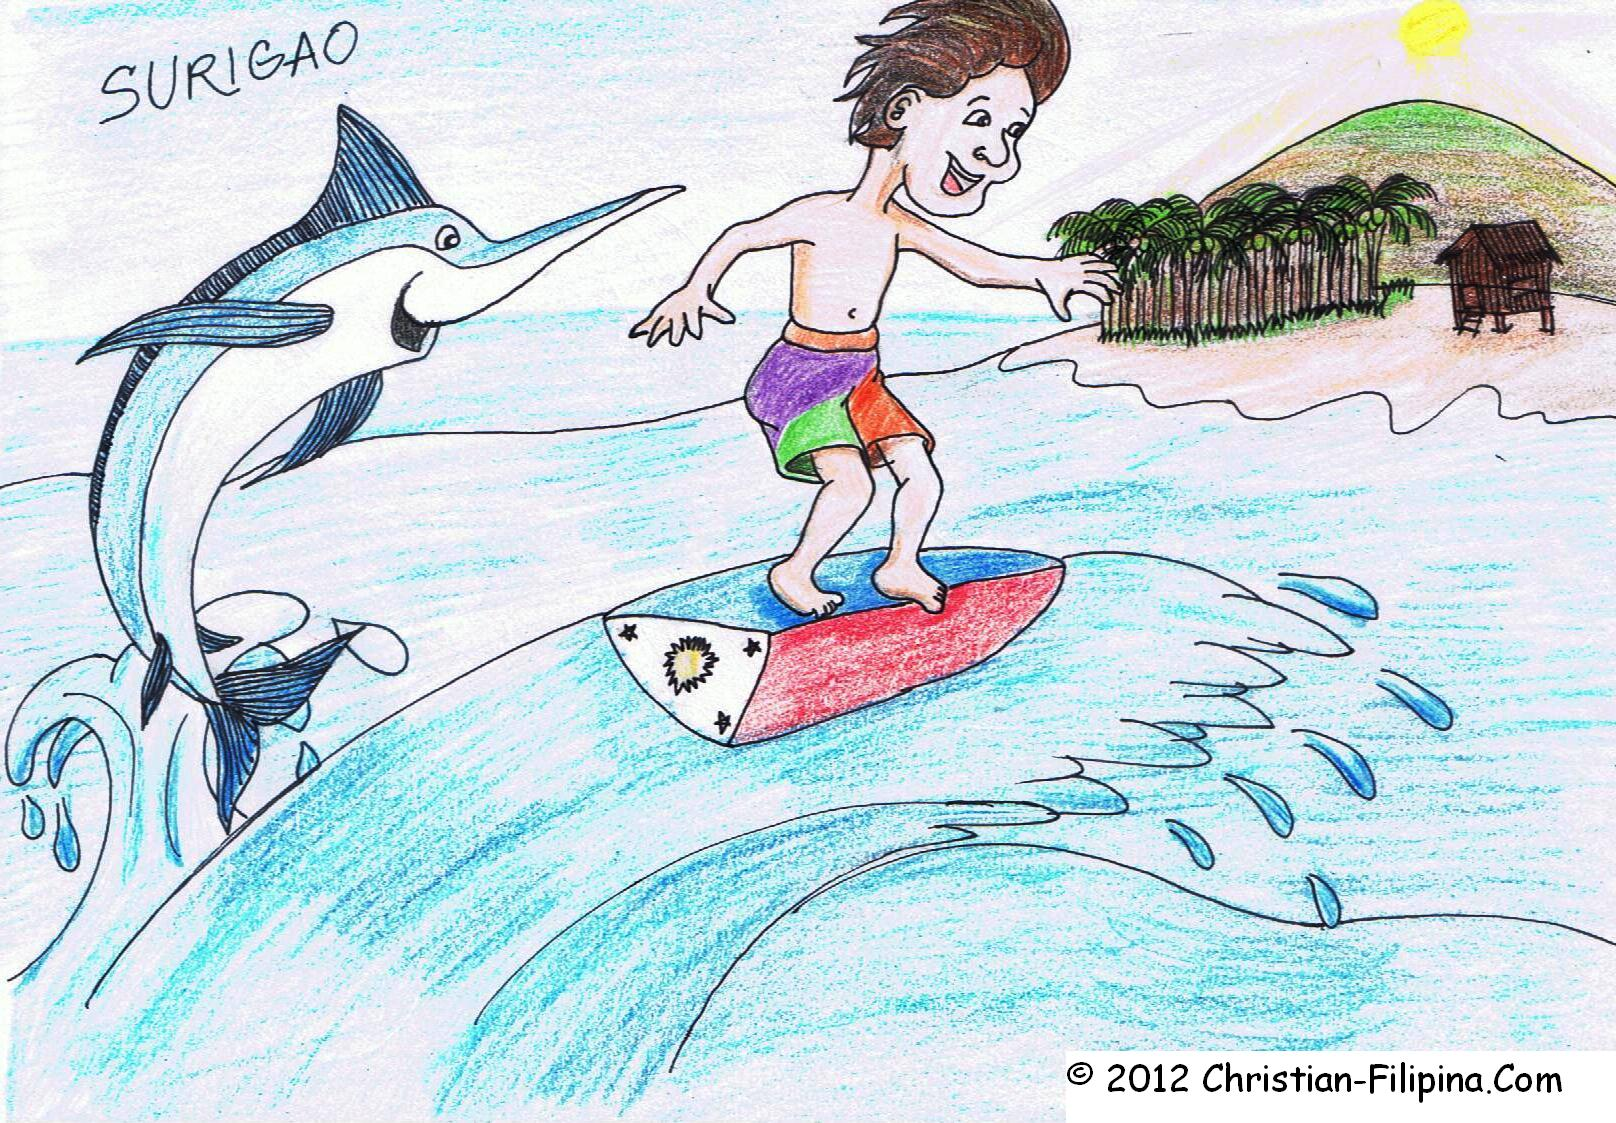 surfing-and-fishing-illustration-surigao